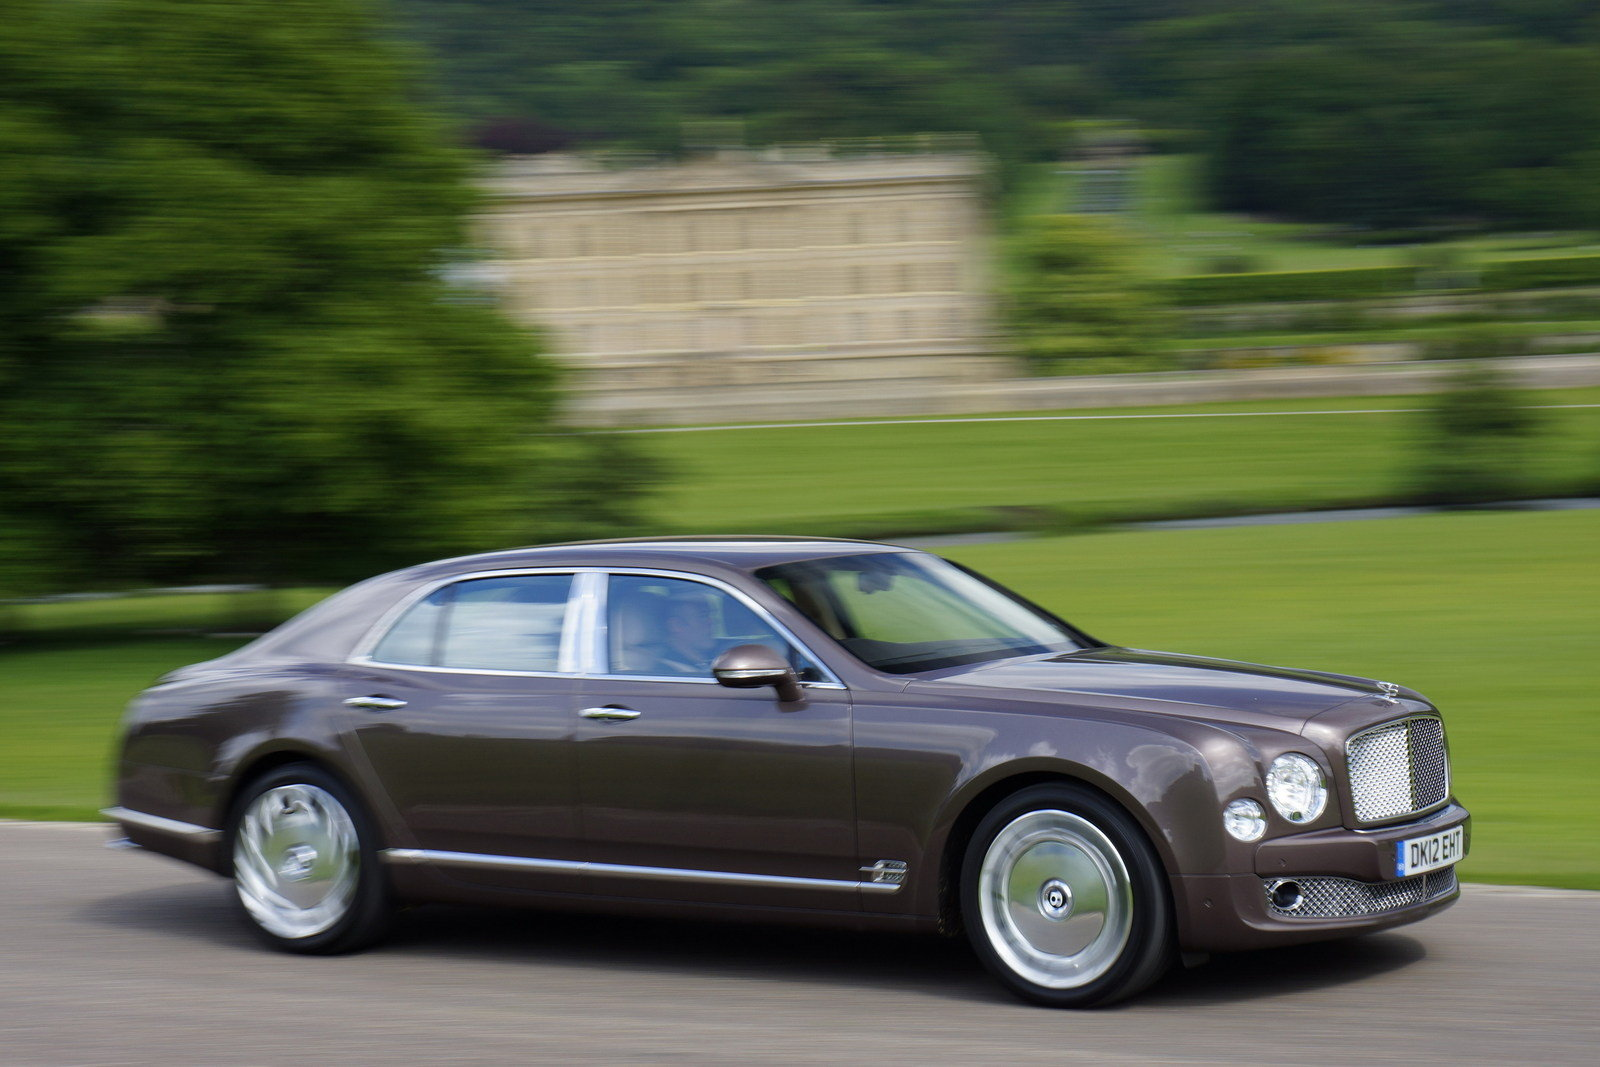 2014 bentley mulsanne picture 490269 car review top. Cars Review. Best American Auto & Cars Review